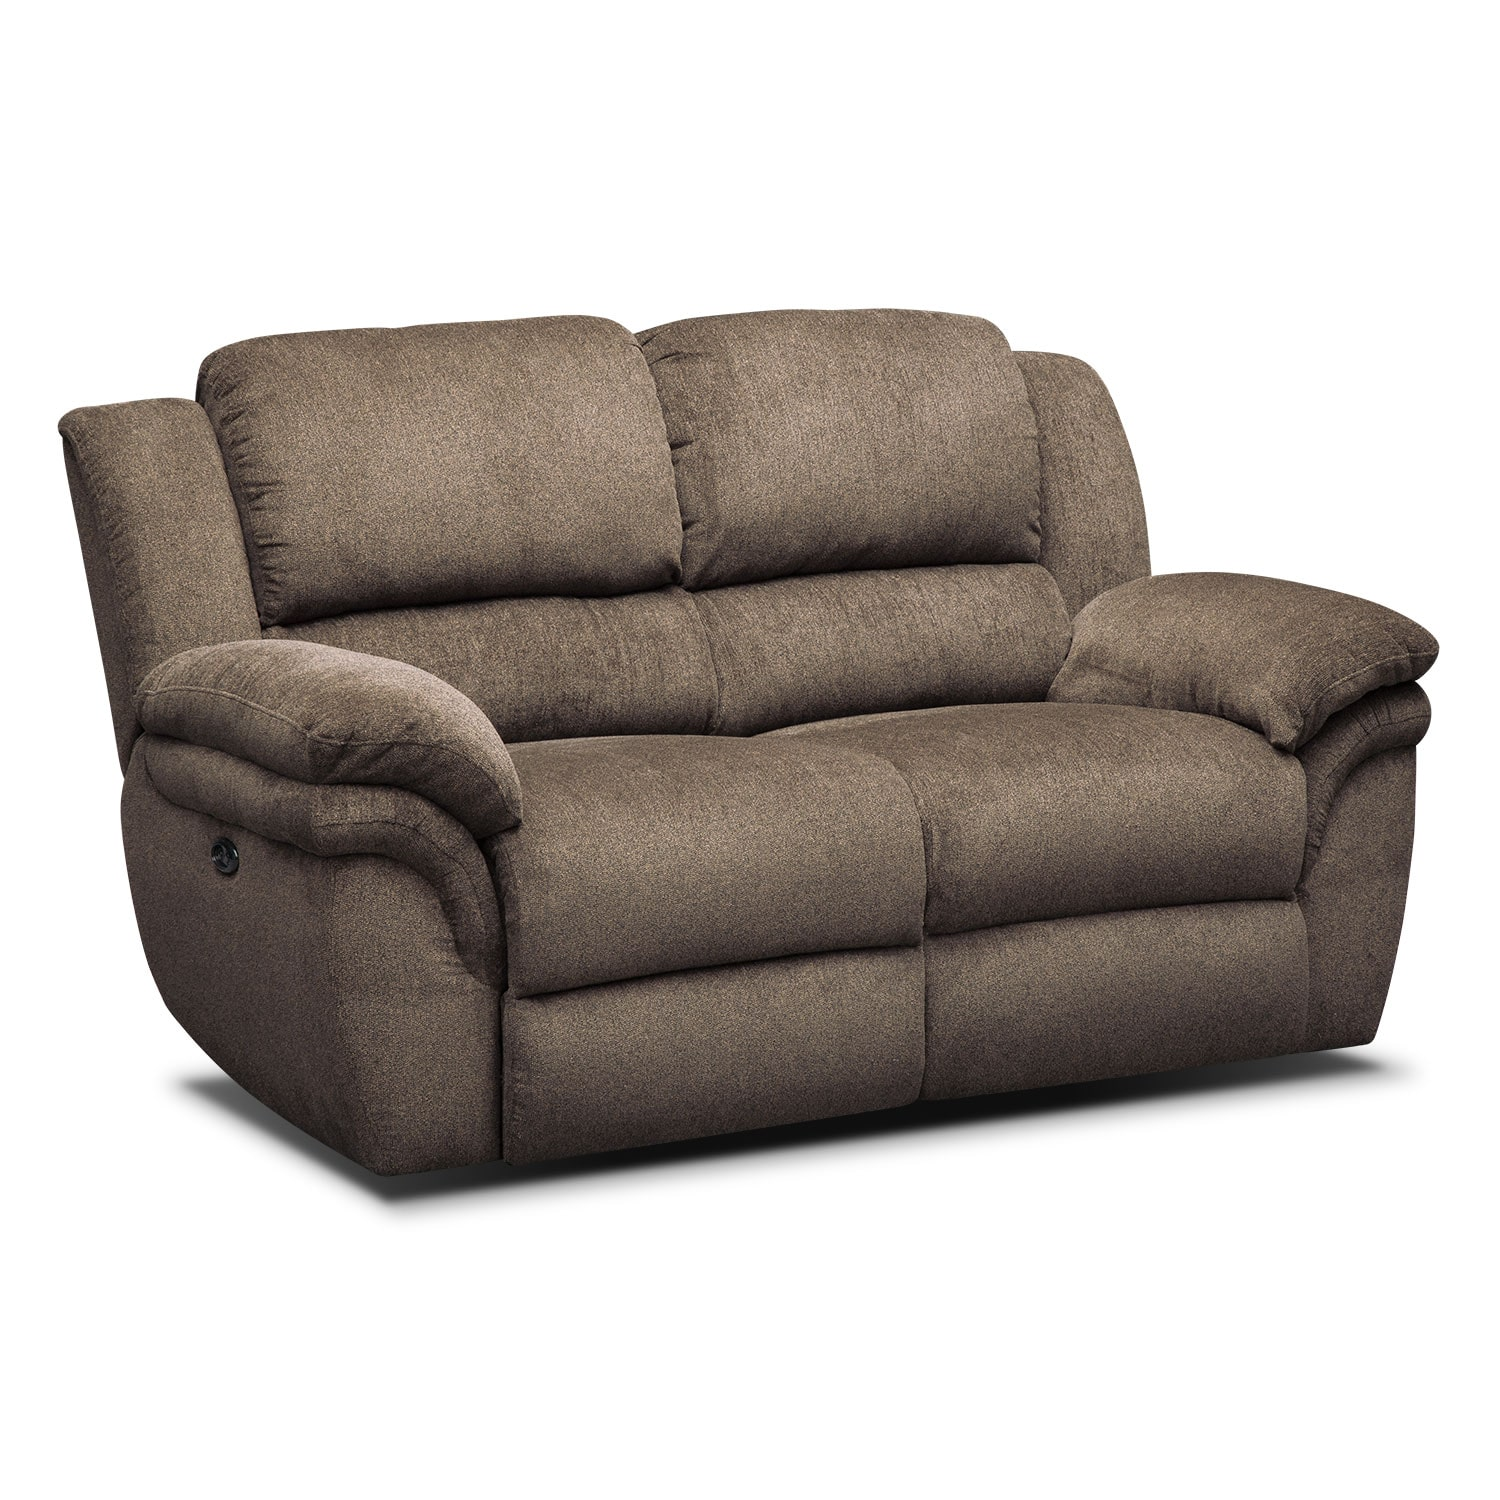 Aldo Power Reclining Sofa, Loveseat And Recliner Set